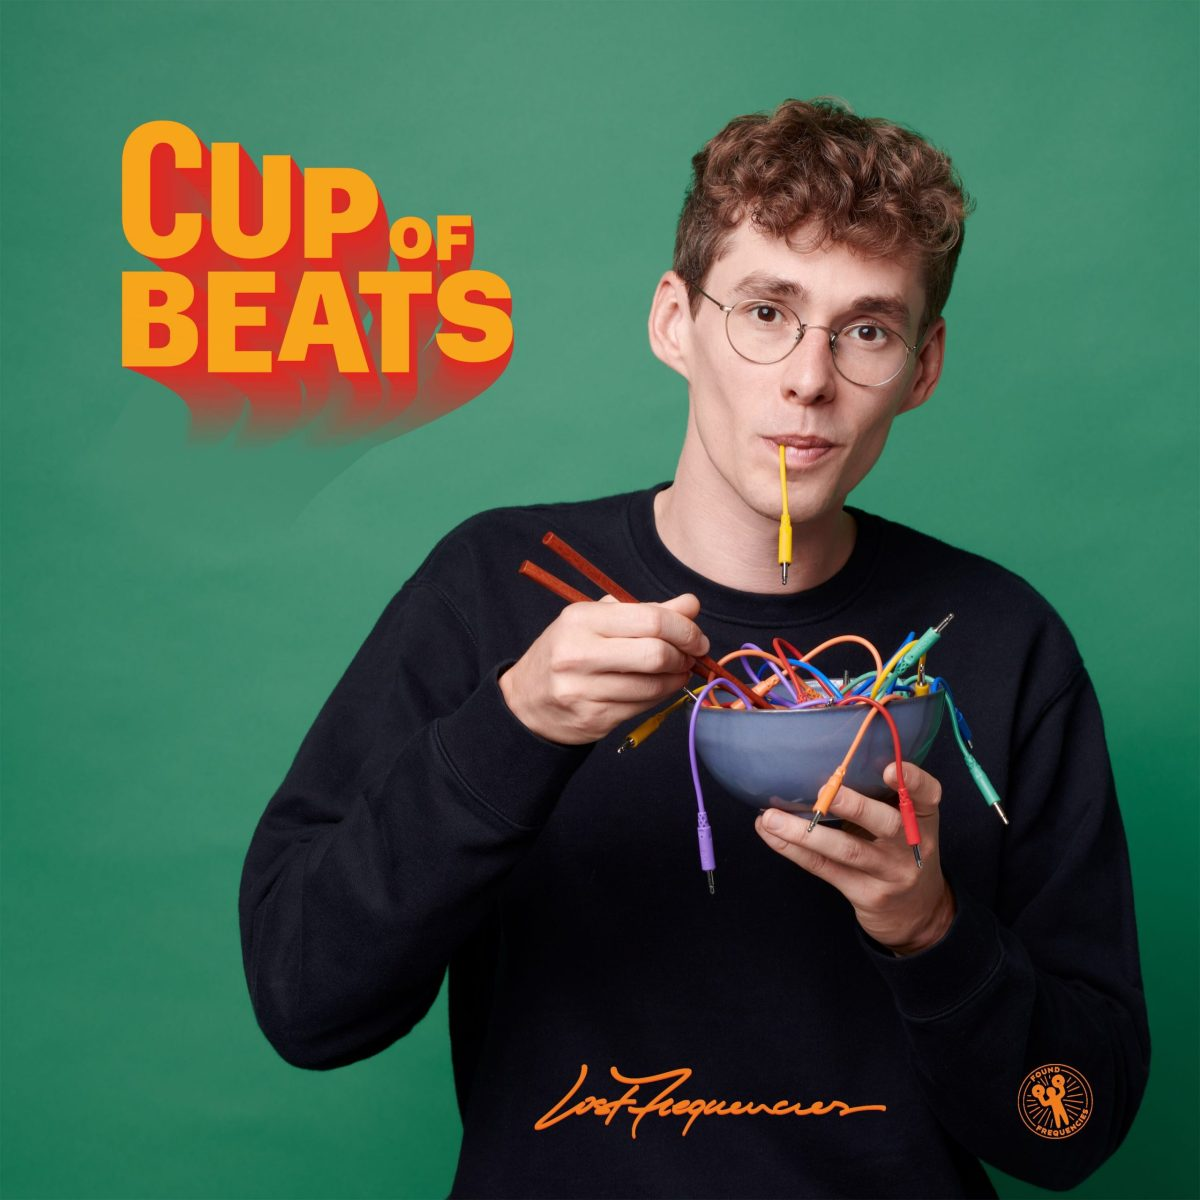 LOST FREQUENCIES ANNOUNCES THE 'CUP OF BEATS' EP – The Backstage ...